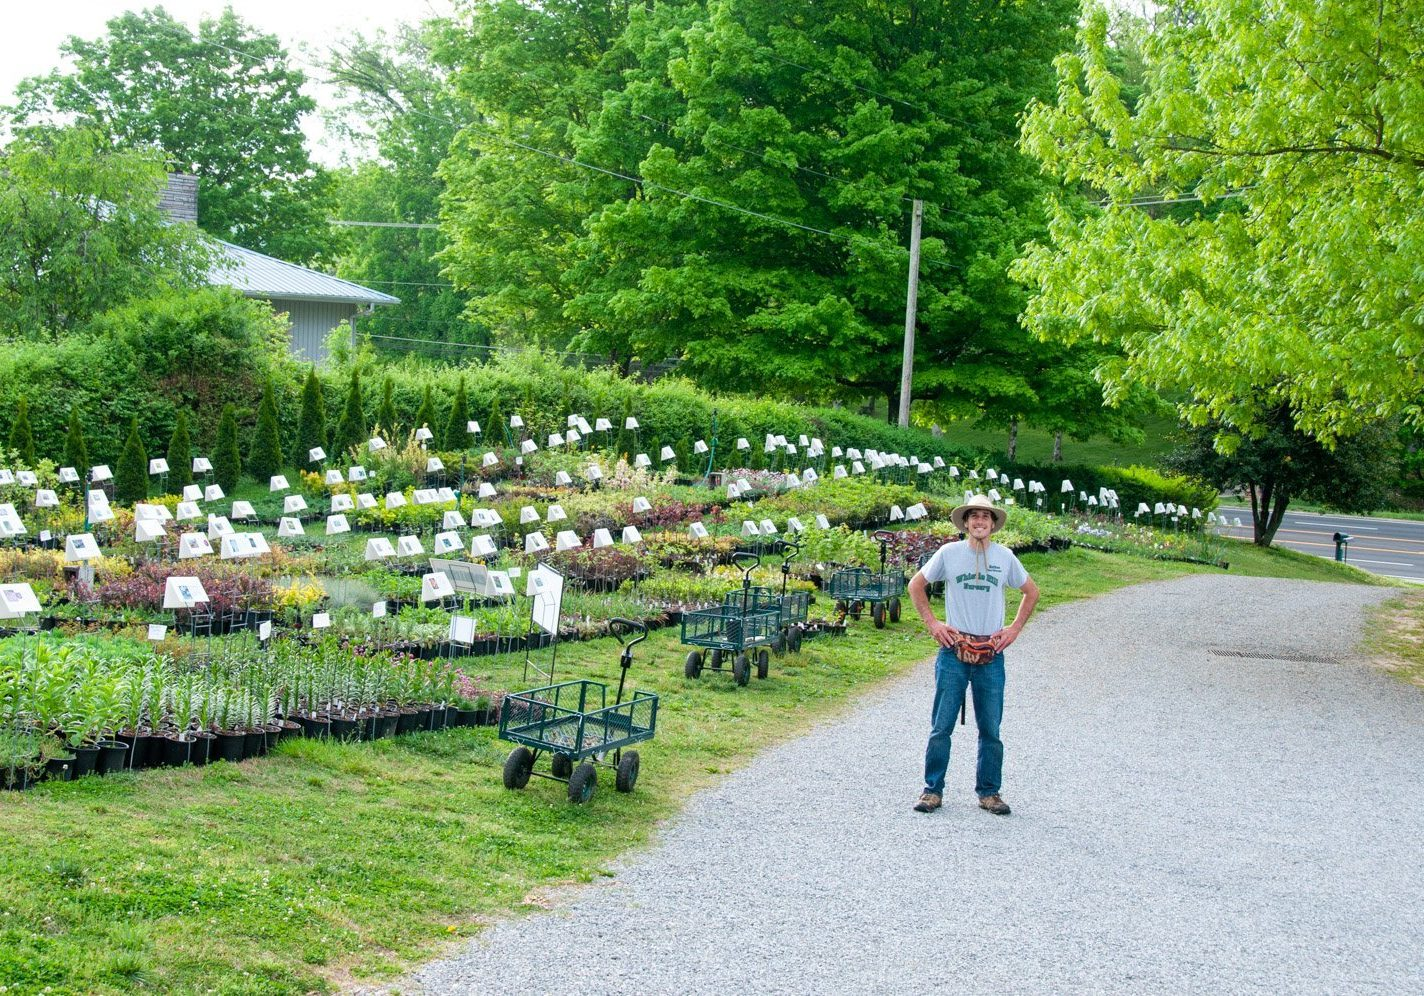 Young owner on sale day in front of his rows of nursery plants with description signs